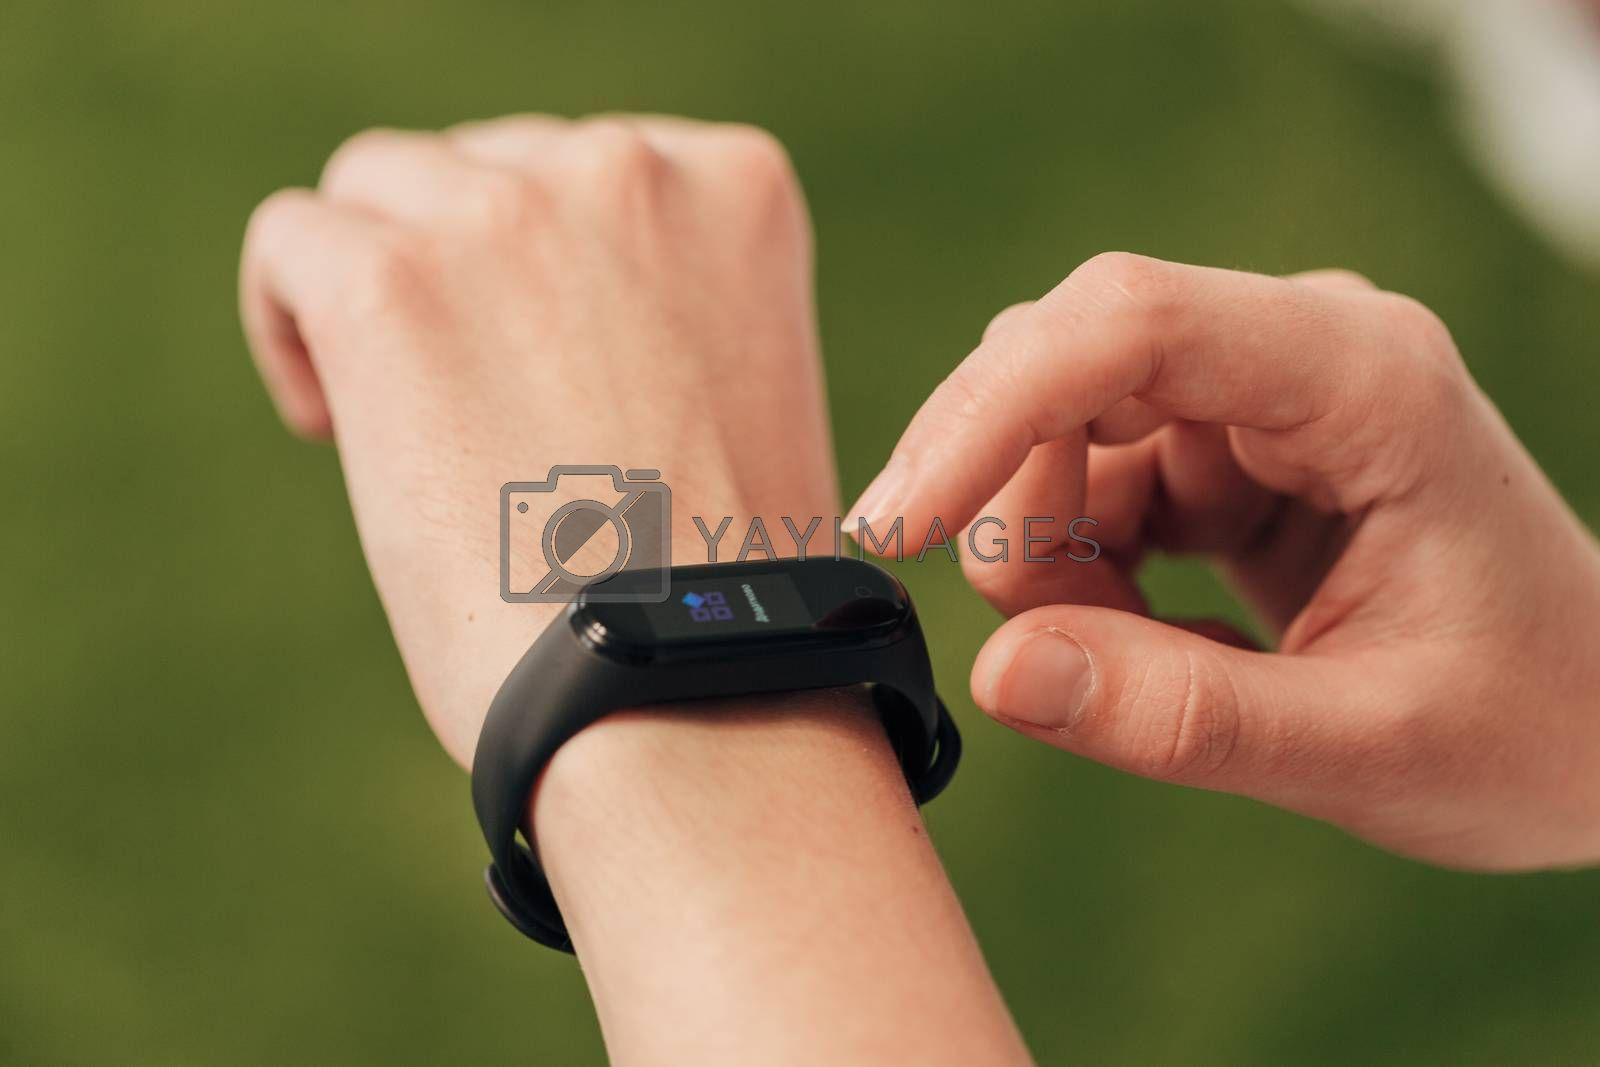 The smartwatch on the wrist measures the heartbeat. Pulse check.